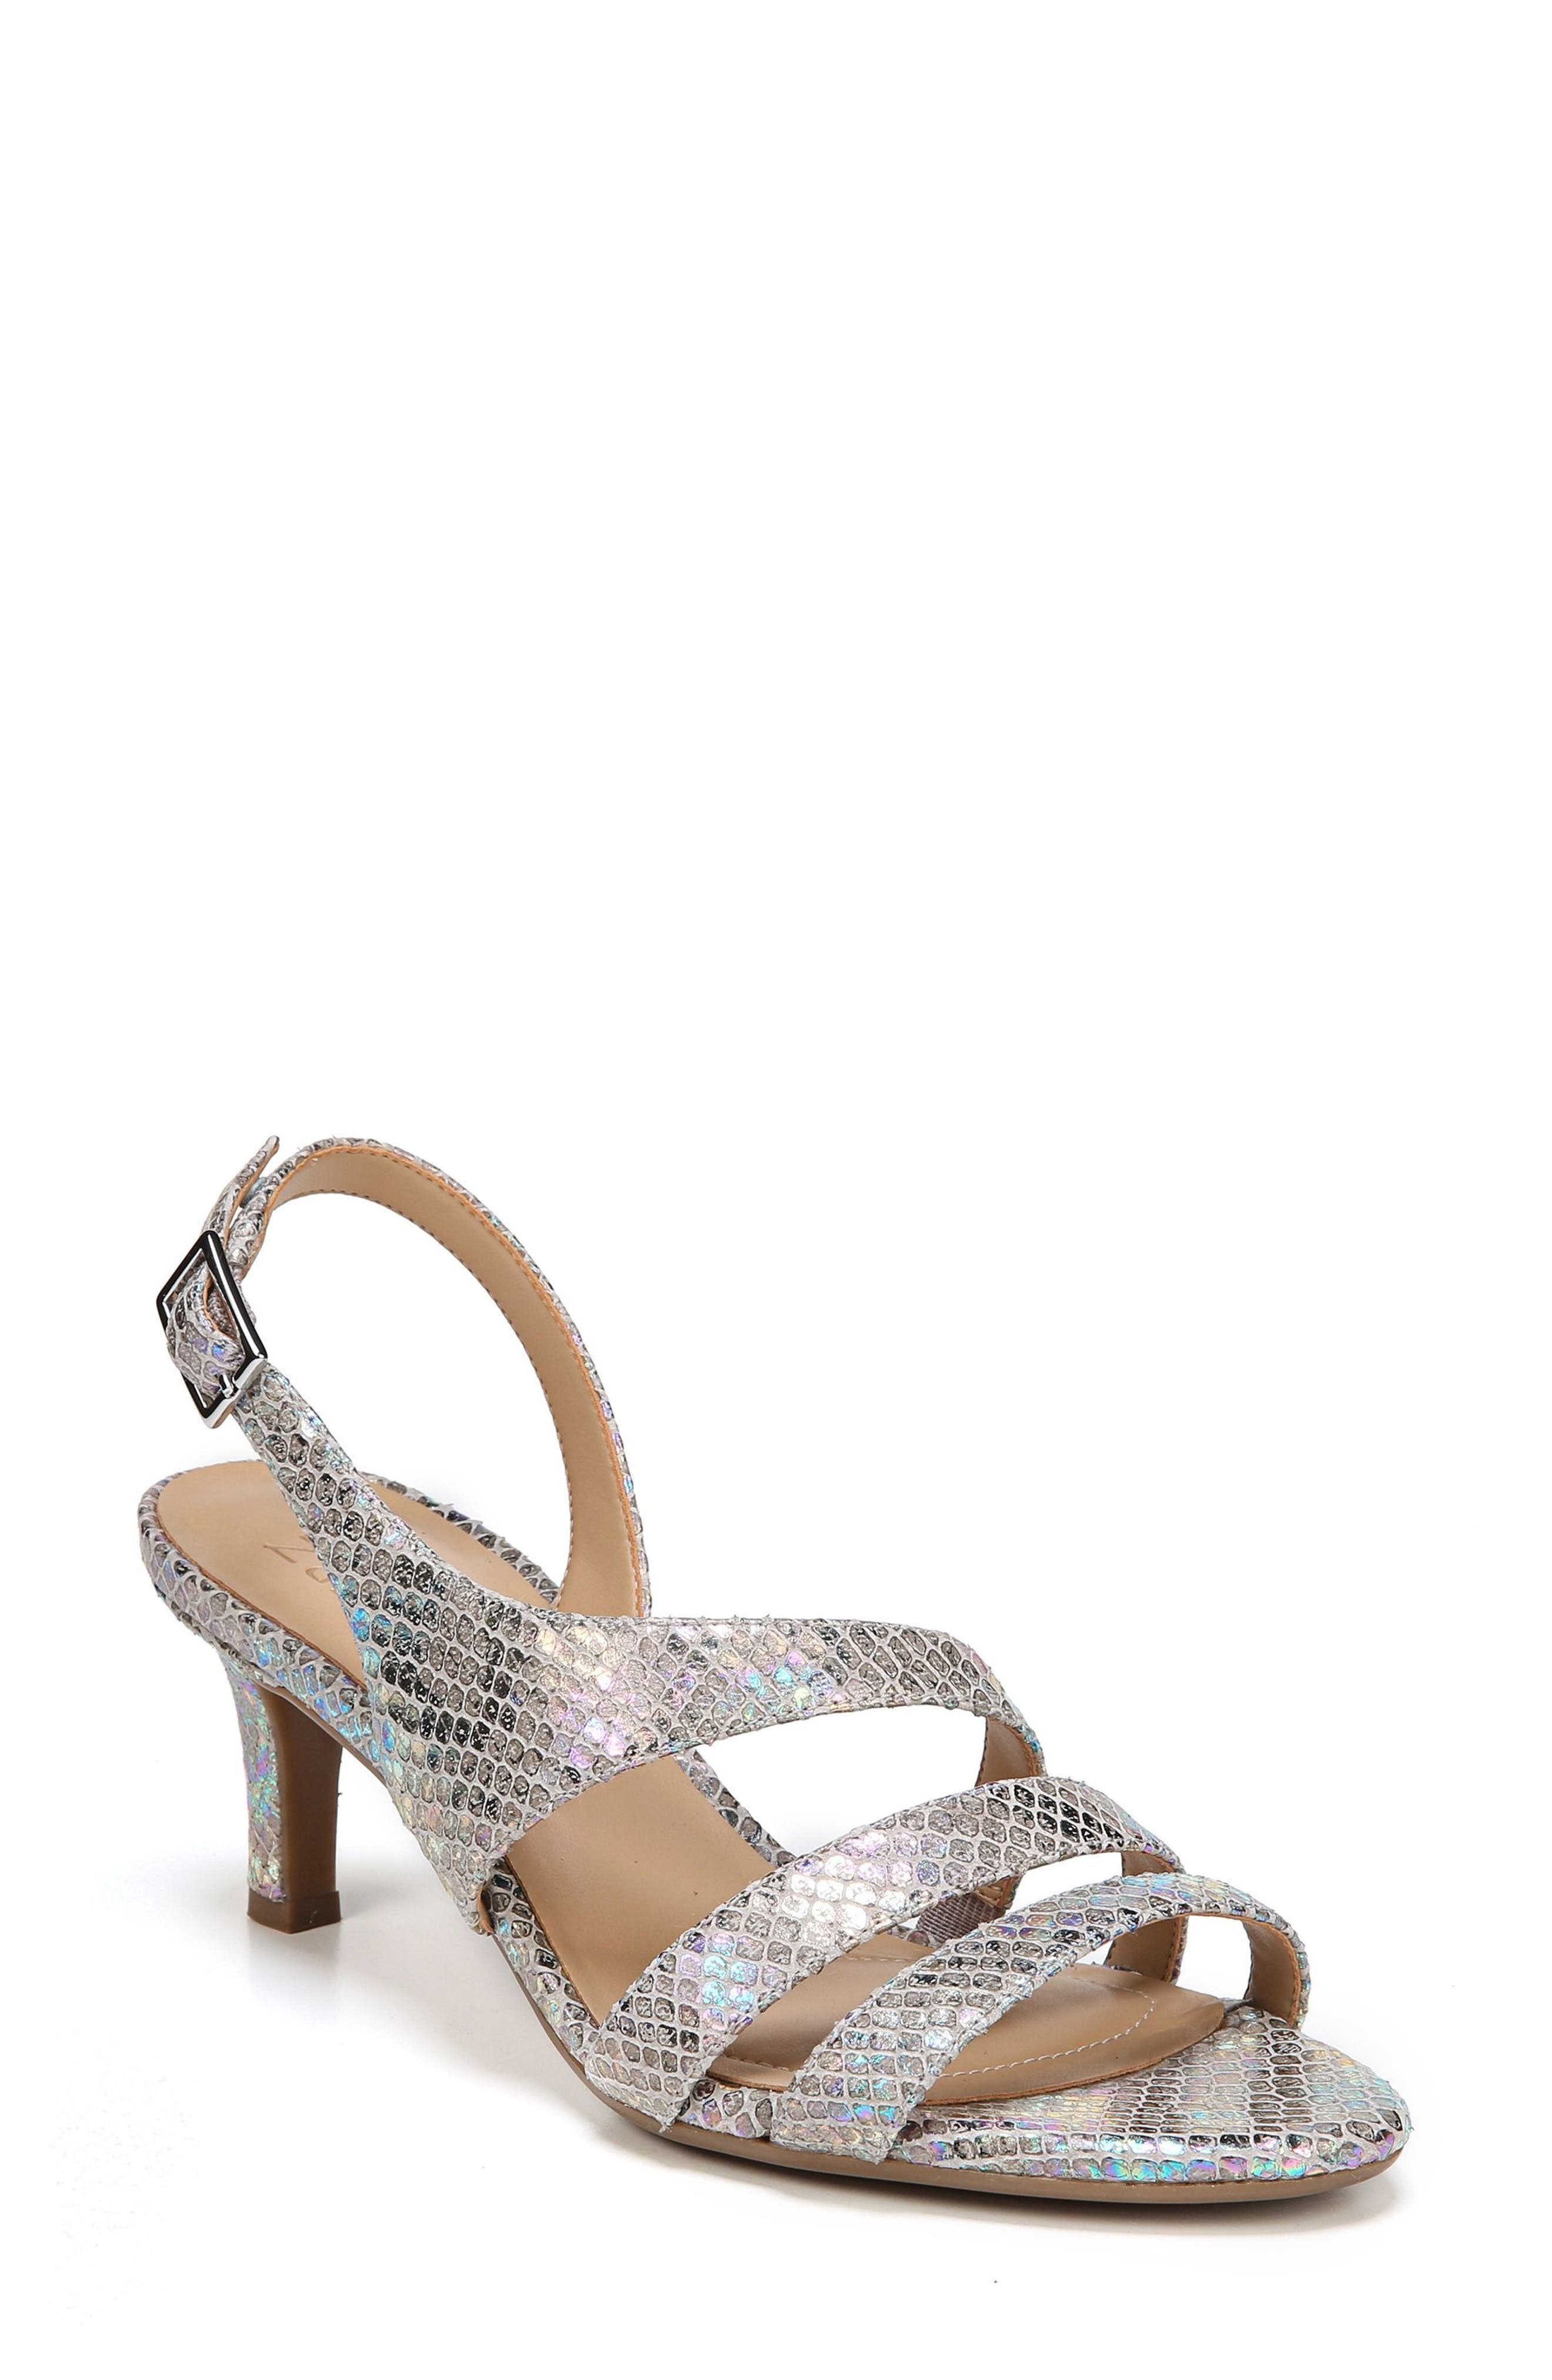 NATURALIZER Taimi Sandal, Main, color, SILVER SNAKE LEATHER PRINT